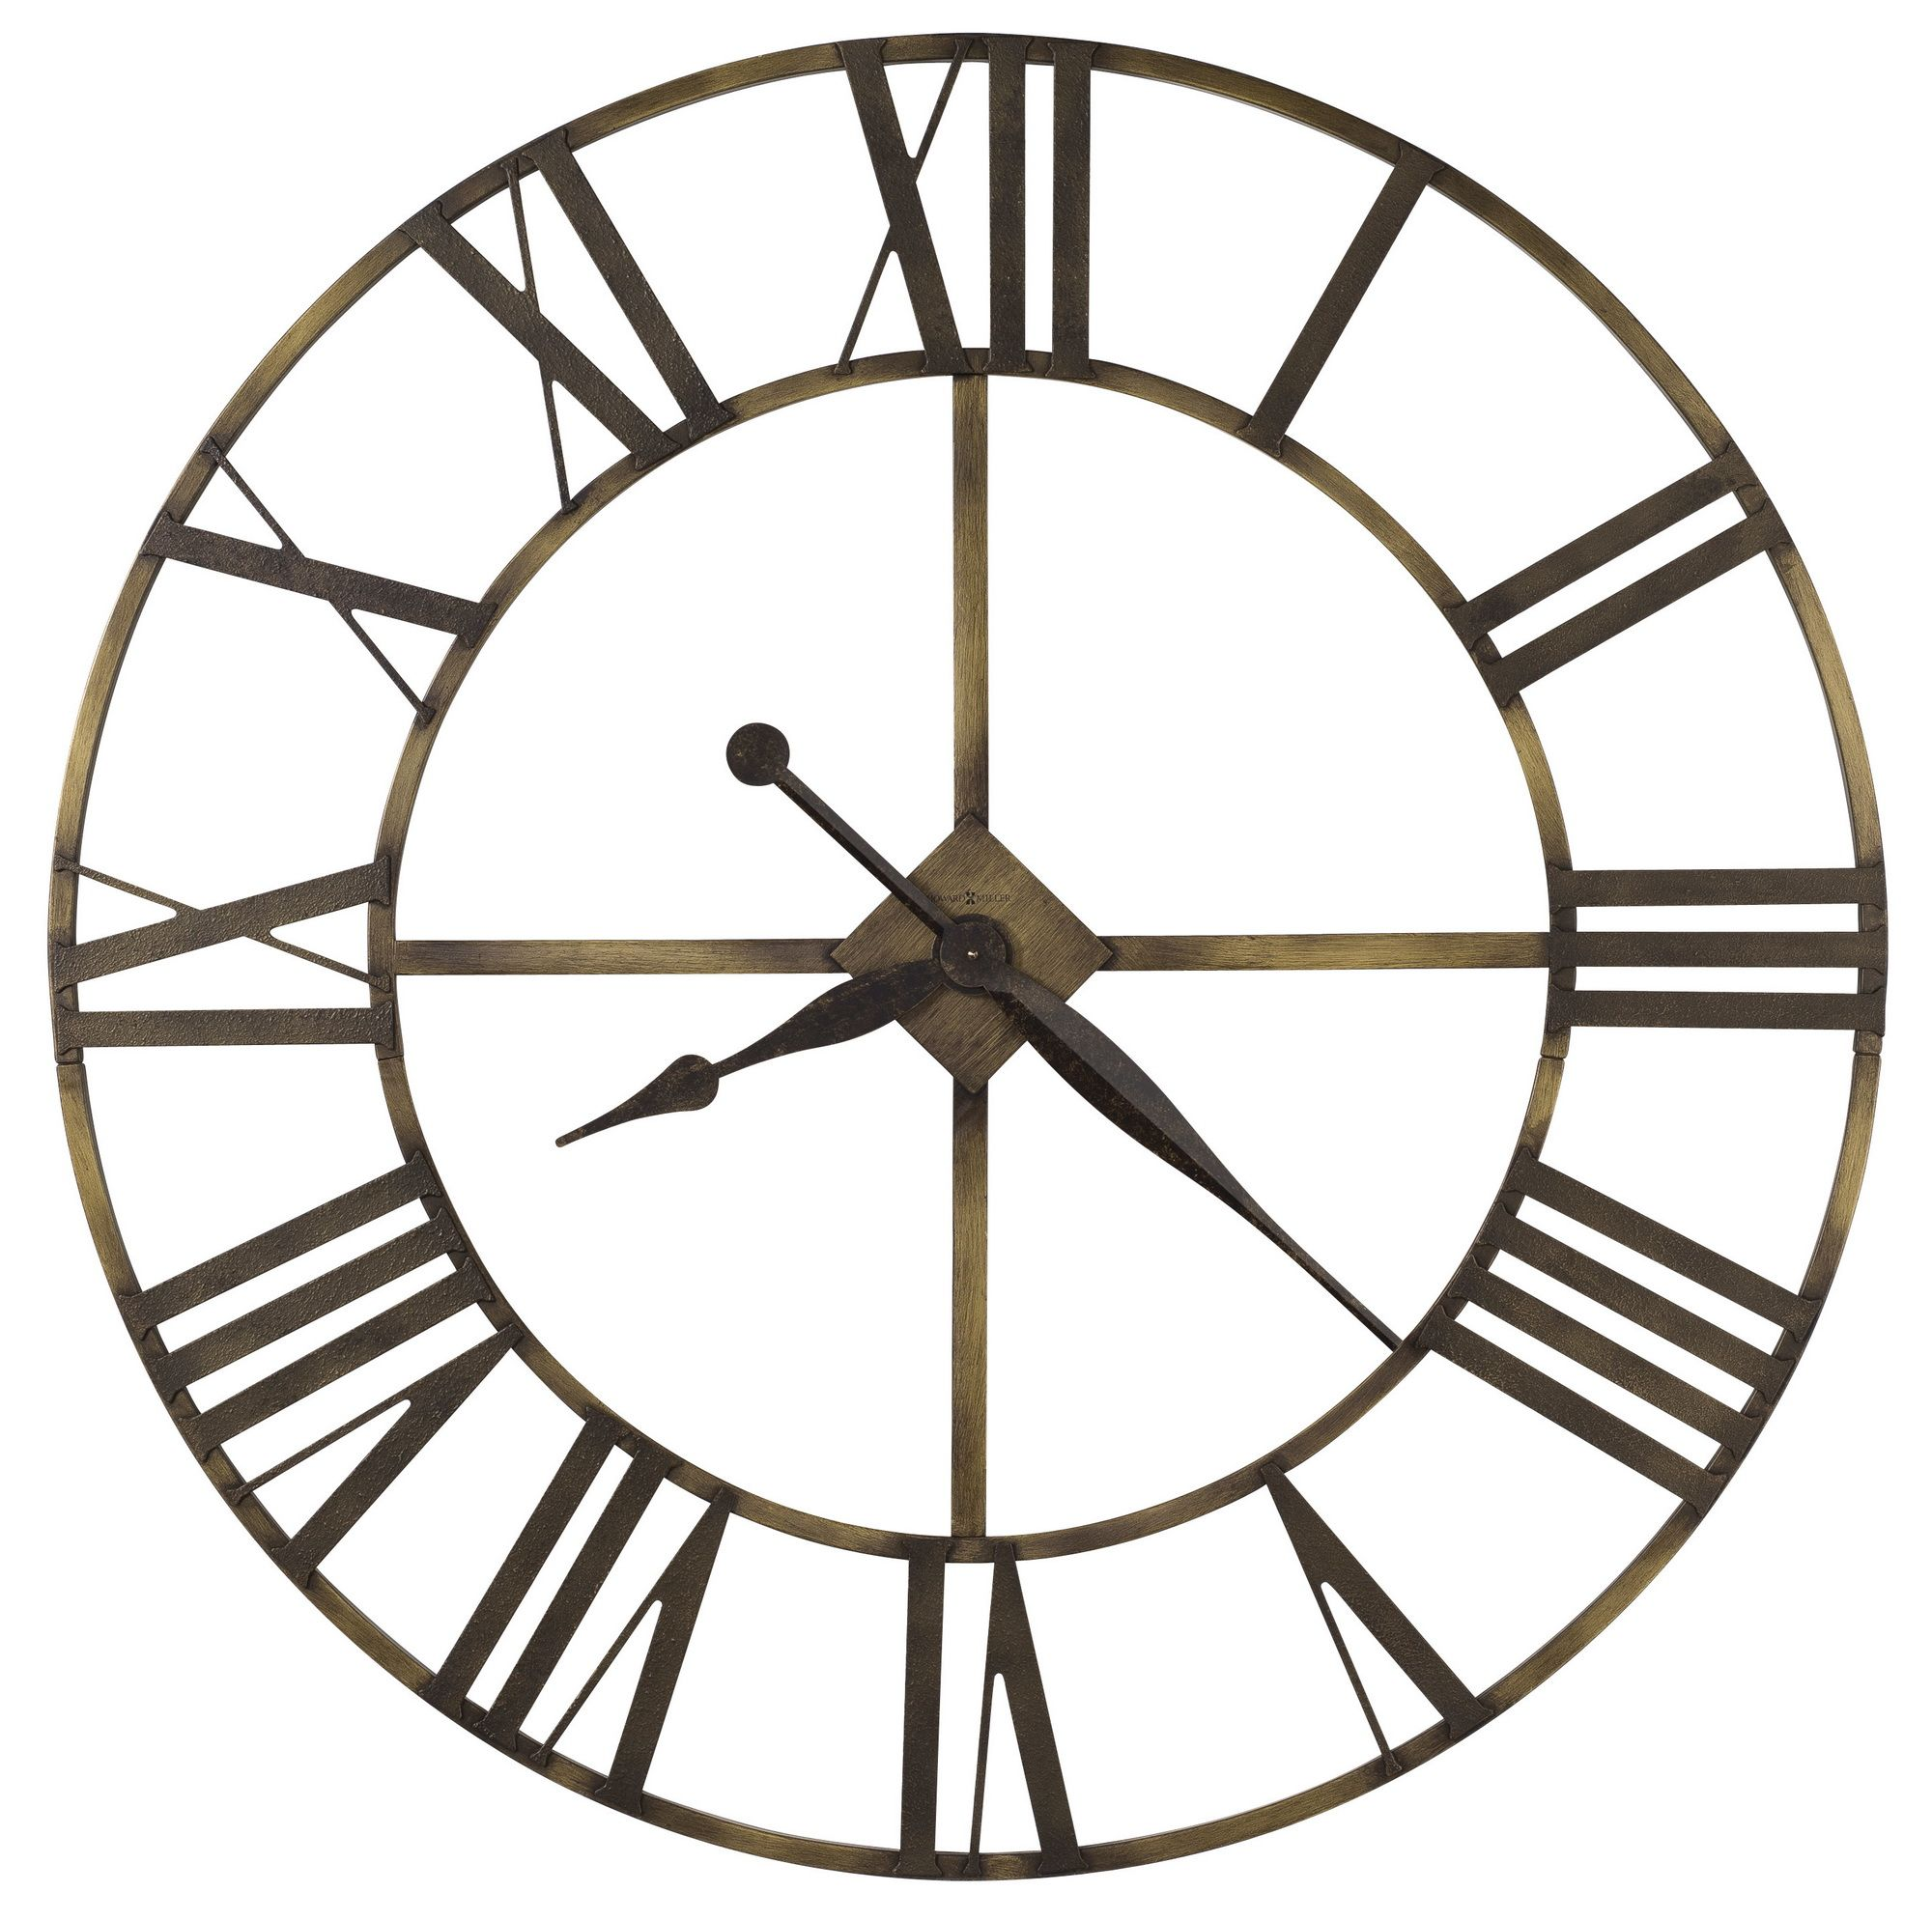 Found It At Clockway Com 49in Howard Miller Wrought Iron Wall Clock In Antique Brass Finish Oversized Wall Clock Large Wall Clock Howard Miller Wall Clock